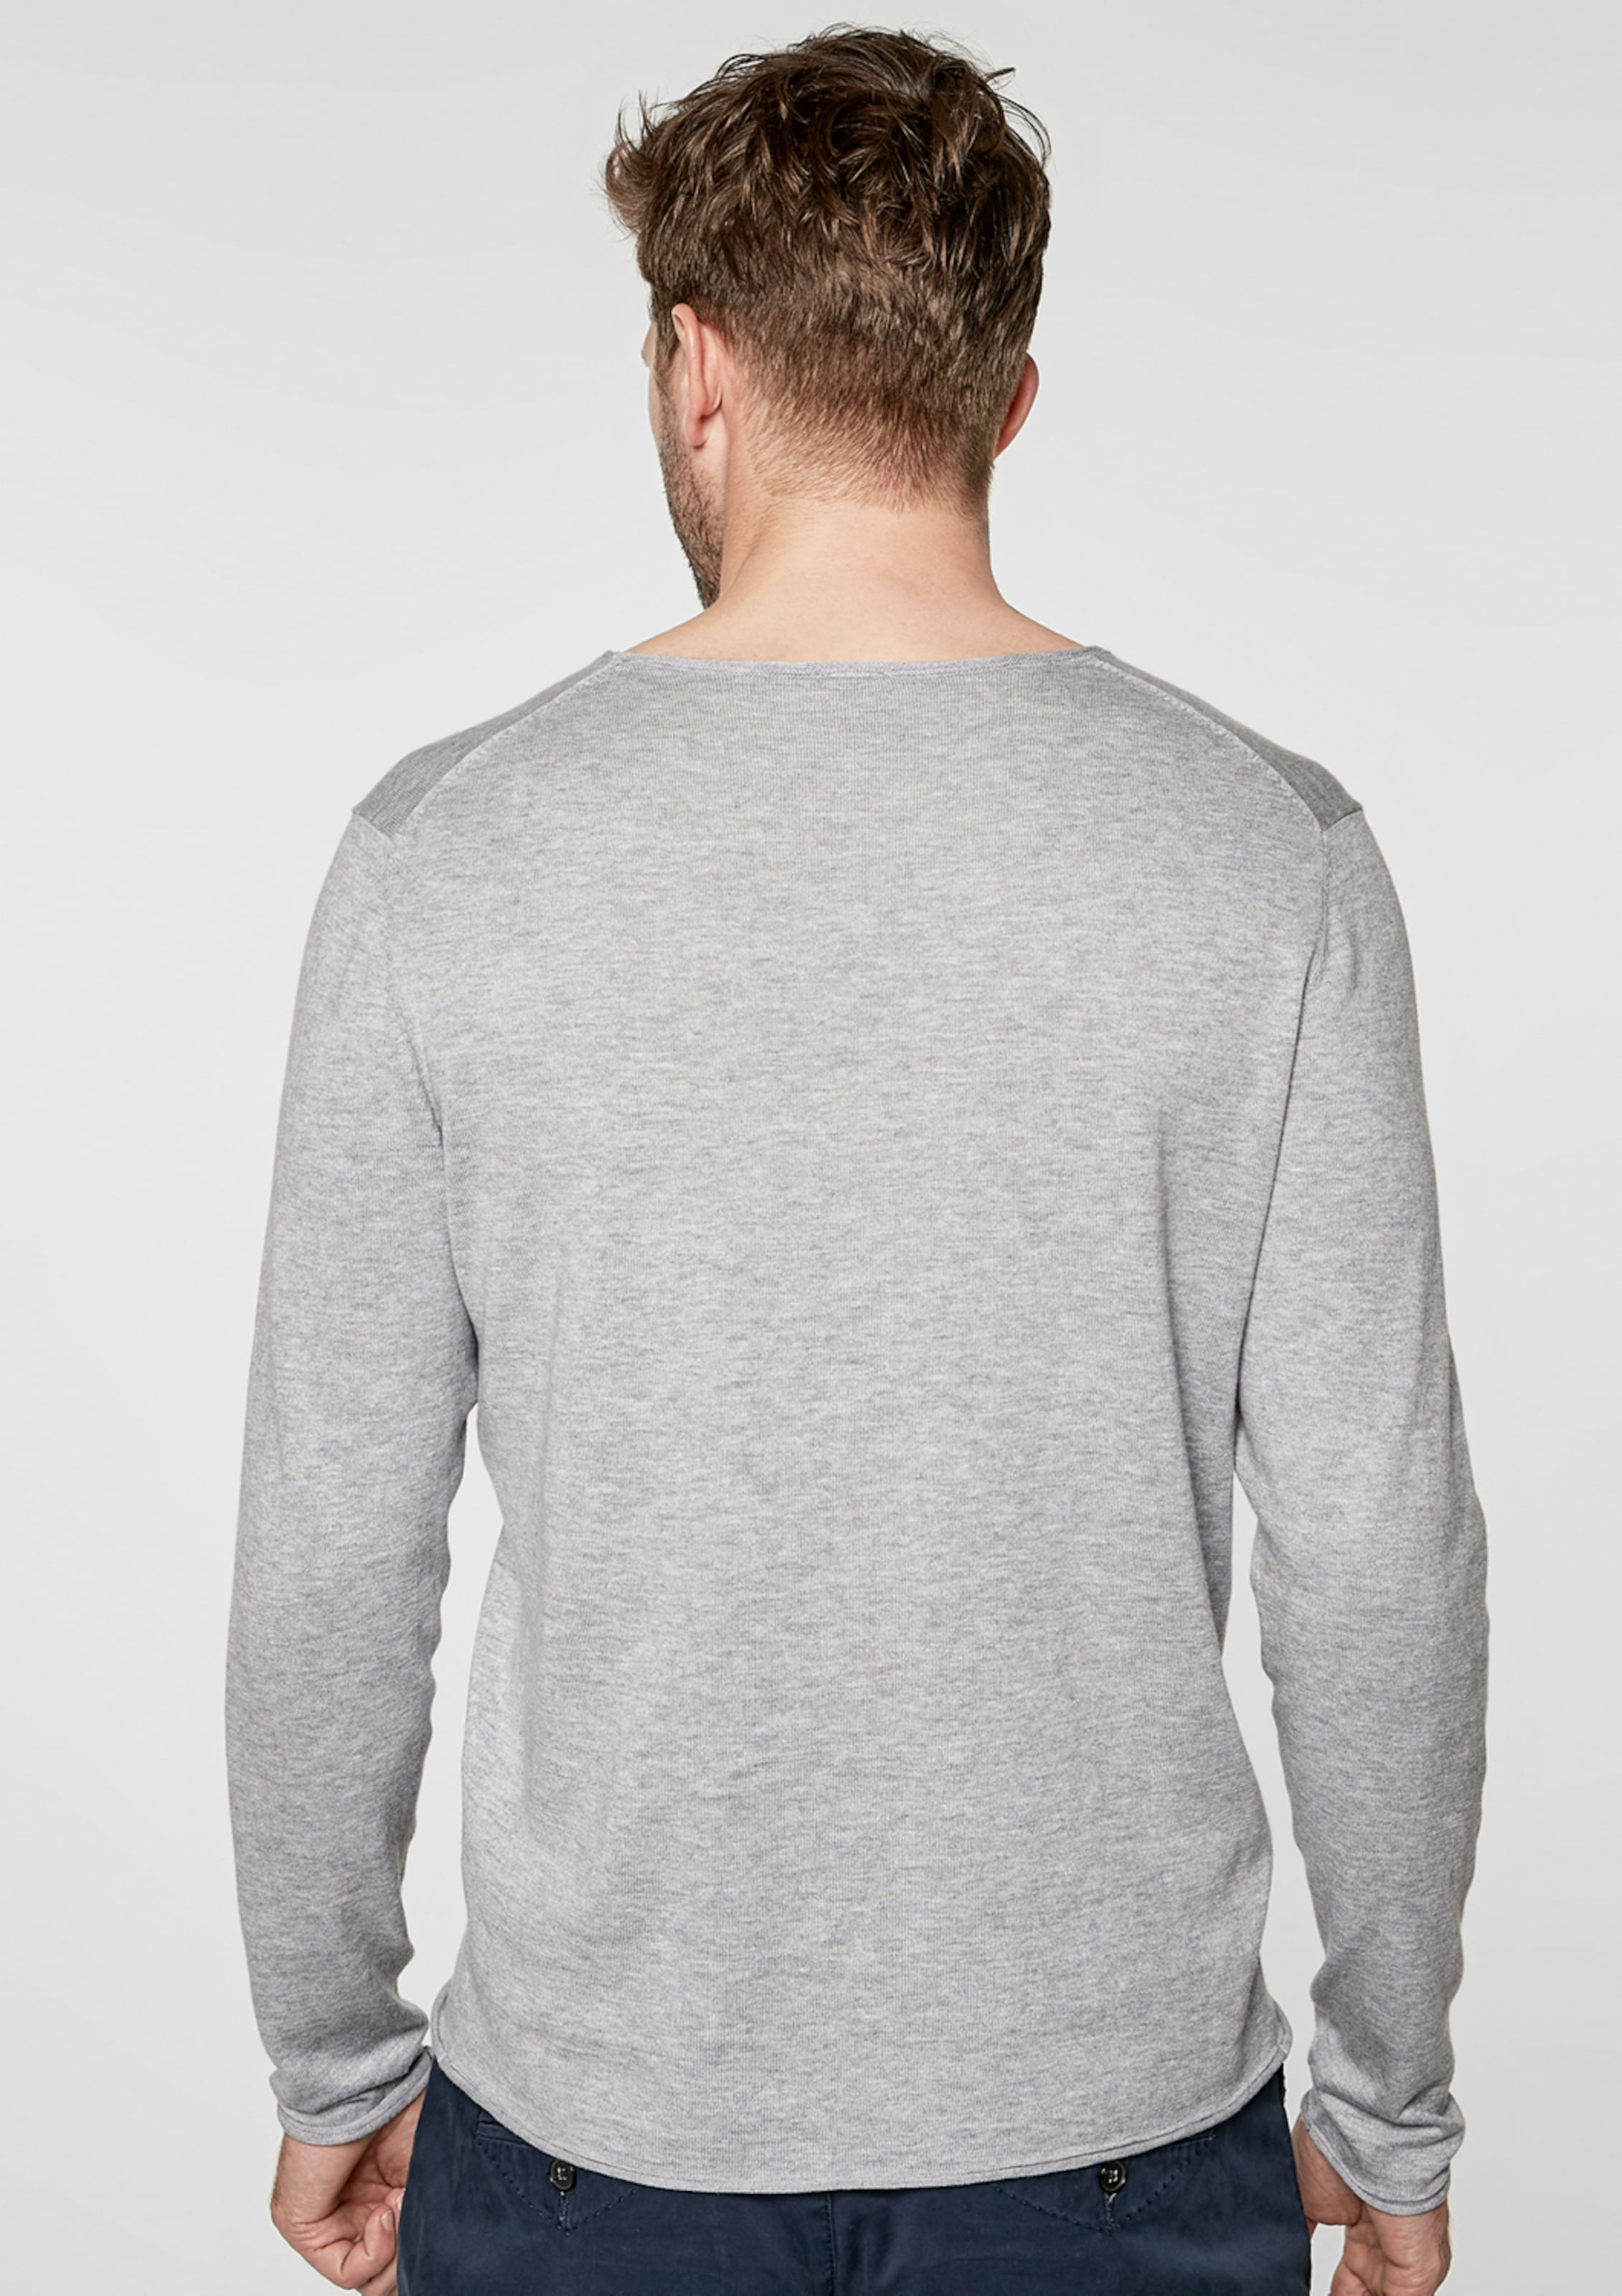 Label S Pullover oliver Graumeliert Black In 9YDEH2beWI